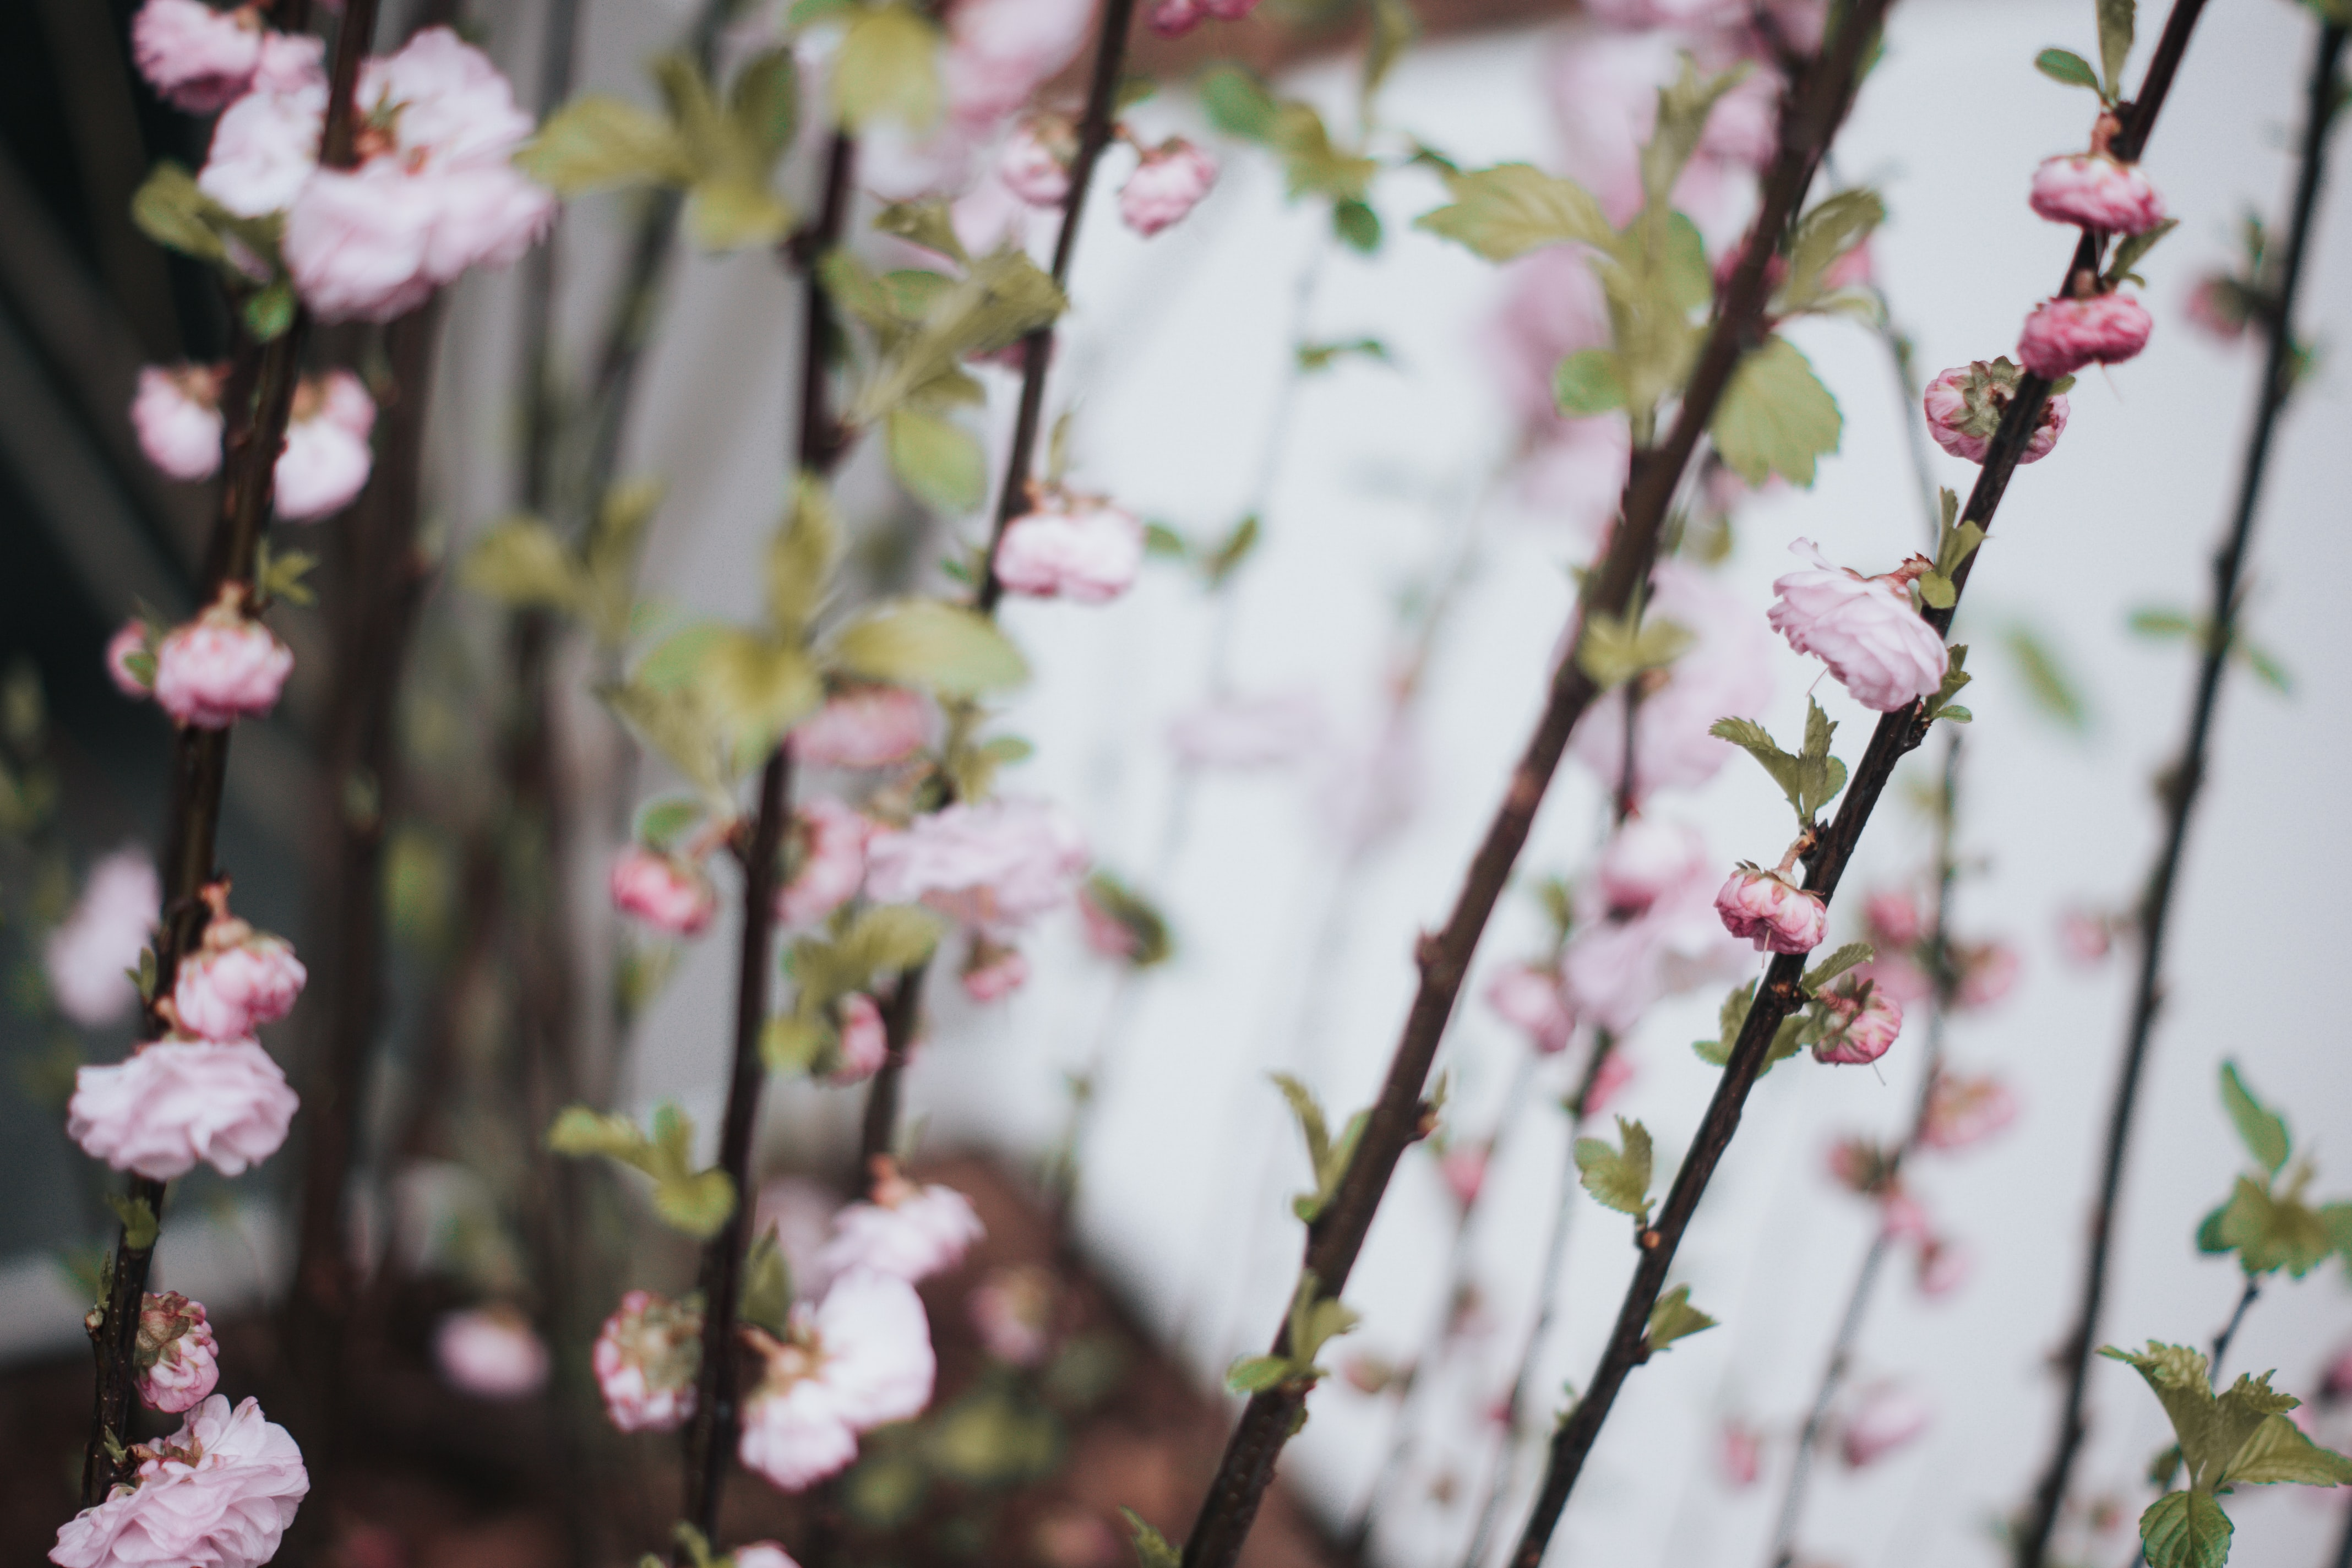 Close-up of pink blossom and flower buds on straight tree branches